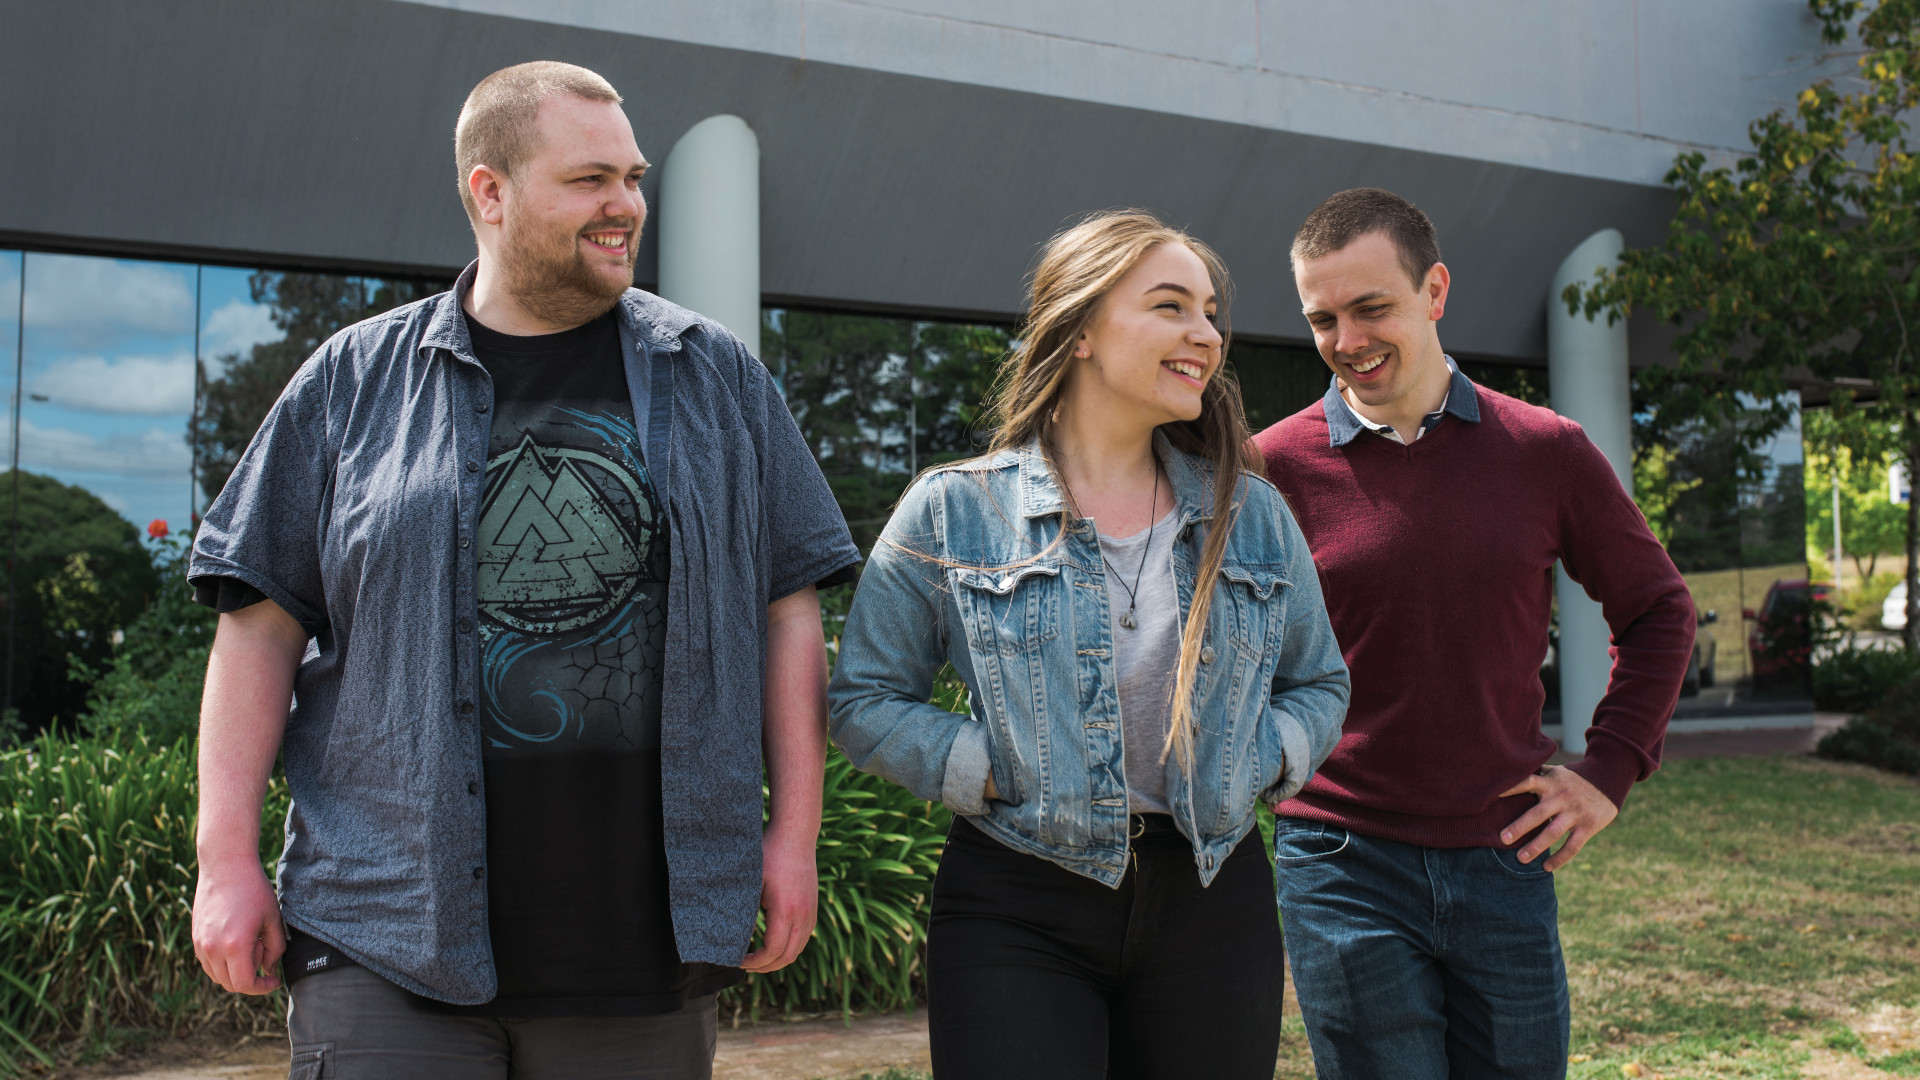 Josiah, Mairead and Chris smiling